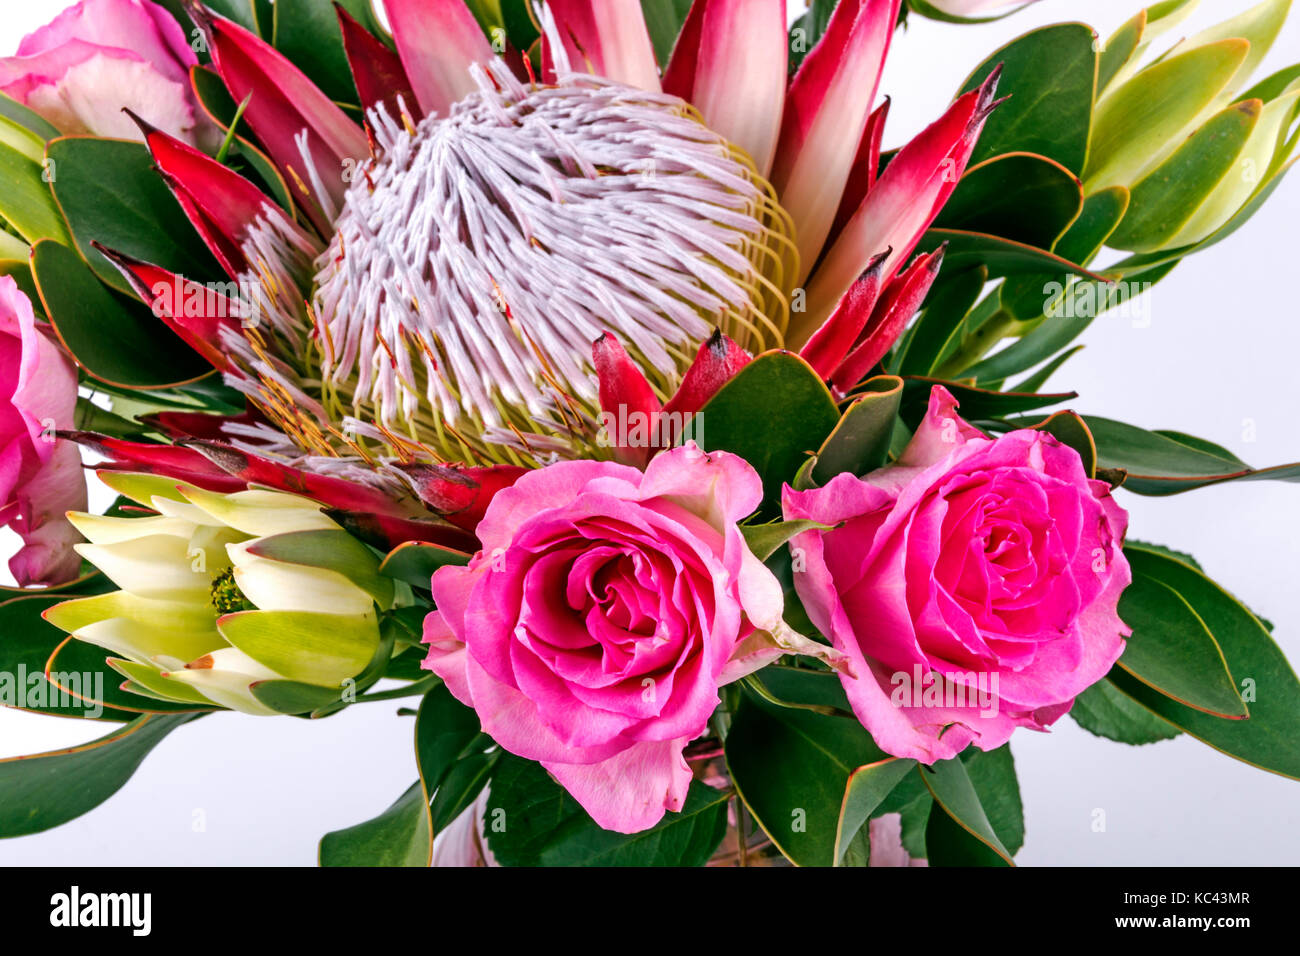 Protea Flower Arrangement High Resolution Stock Photography And Images Alamy